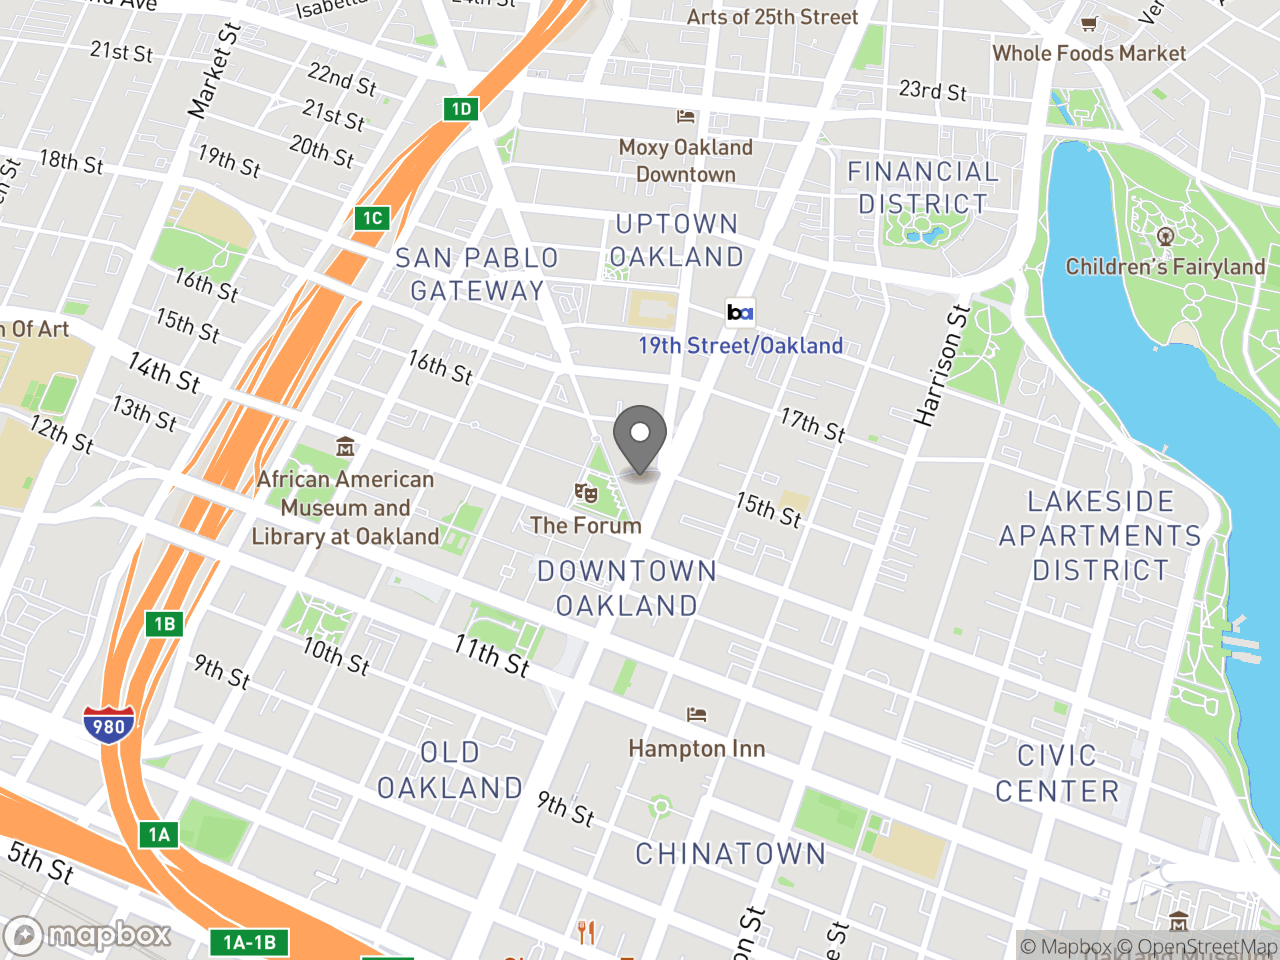 Map location for Employment Investigations and Civil Rights Compliance, located at 150 Frank H Ogawa Plaza in Oakland, CA 94612